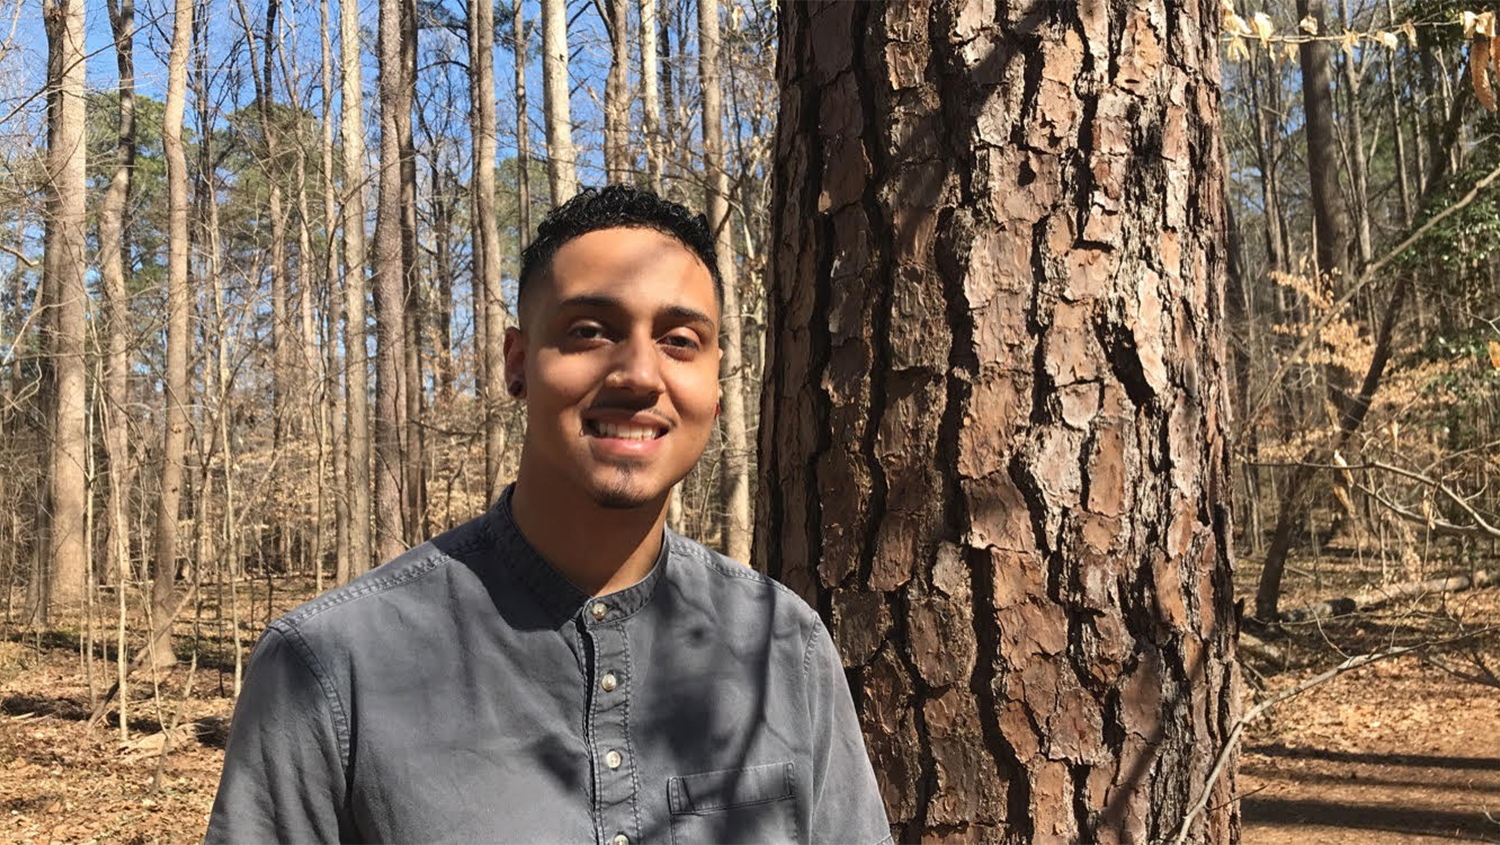 Norman poses and smiles in woods - Forestry Student Overcomes Challenges to Shine as Research Assistant - College of Natural Resources at NCState University